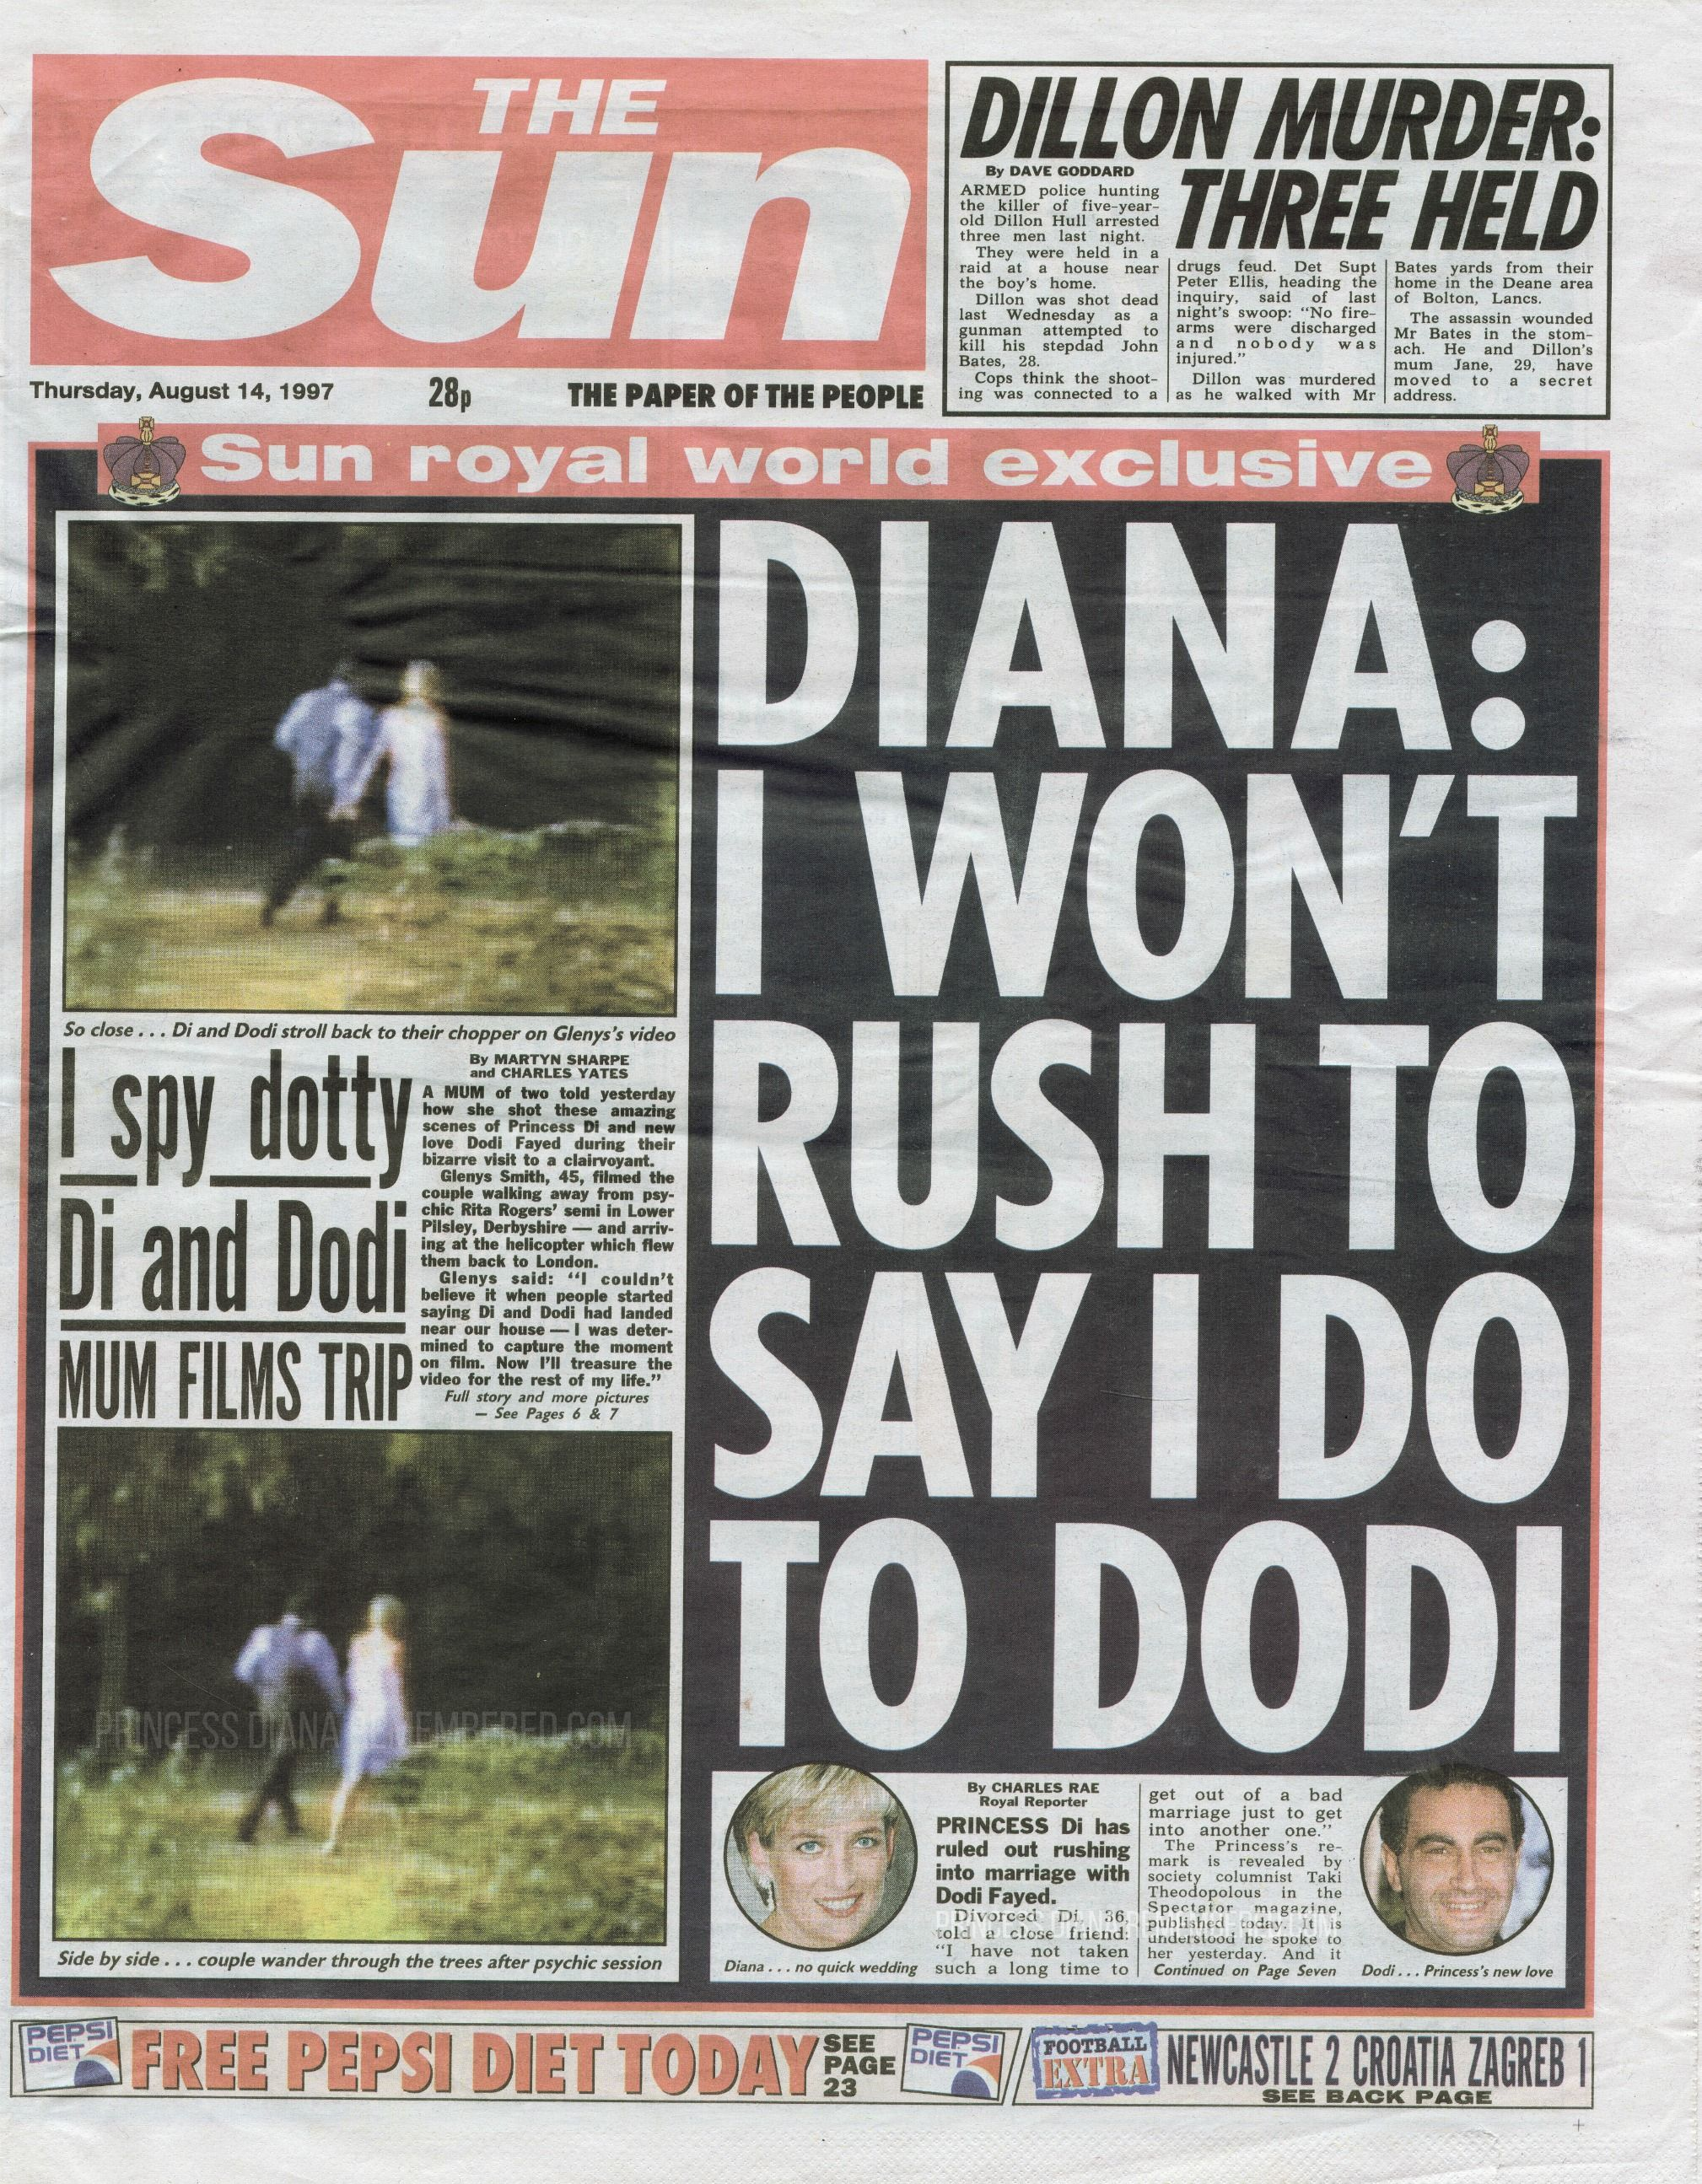 The Sun Newspaper Sensationally Made These Claims But The British People Never Really Believed That Princess Diana Princess Diana Rare Princess Diana And Dodi